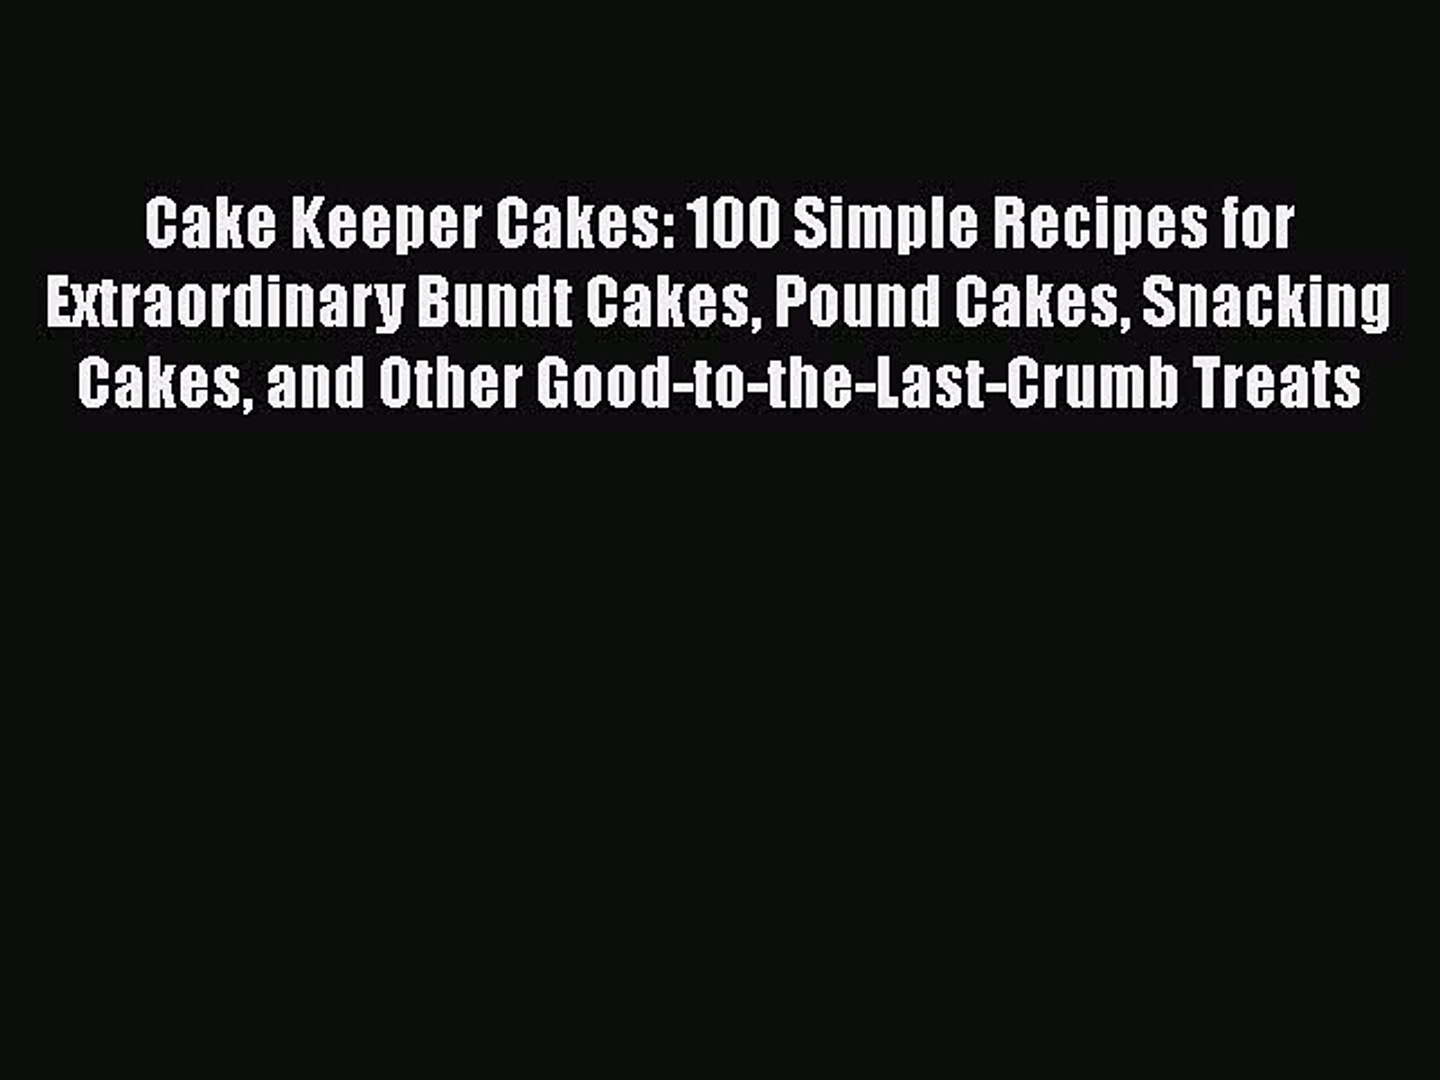 [Read Book] Cake Keeper Cakes: 100 Simple Recipes for Extraordinary Bundt Cakes Pound Cakes